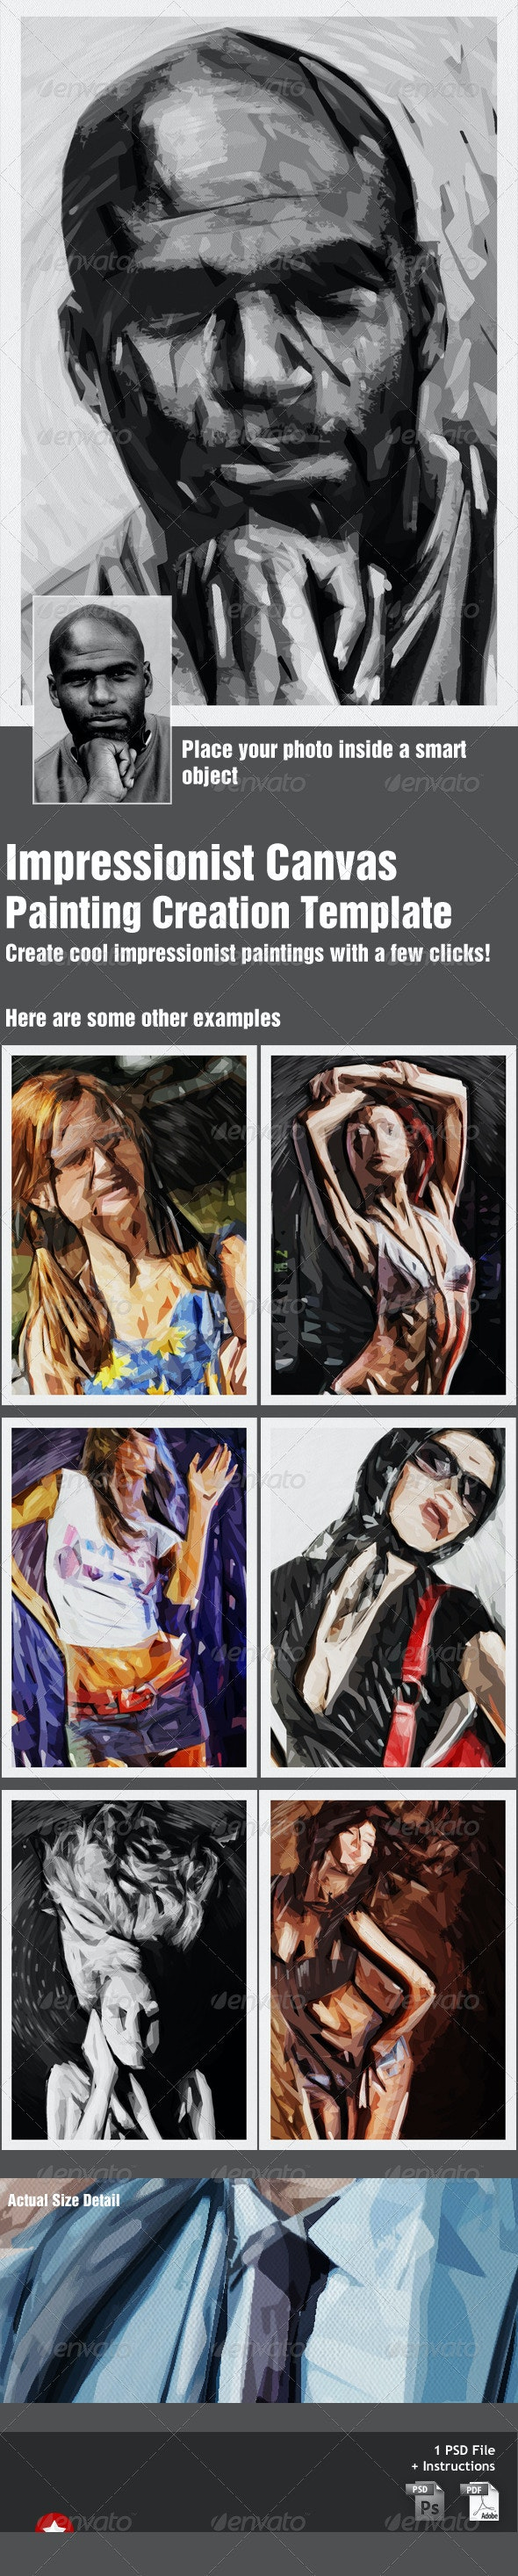 Impressionist Canvas - Painting Template - Artistic Photo Templates